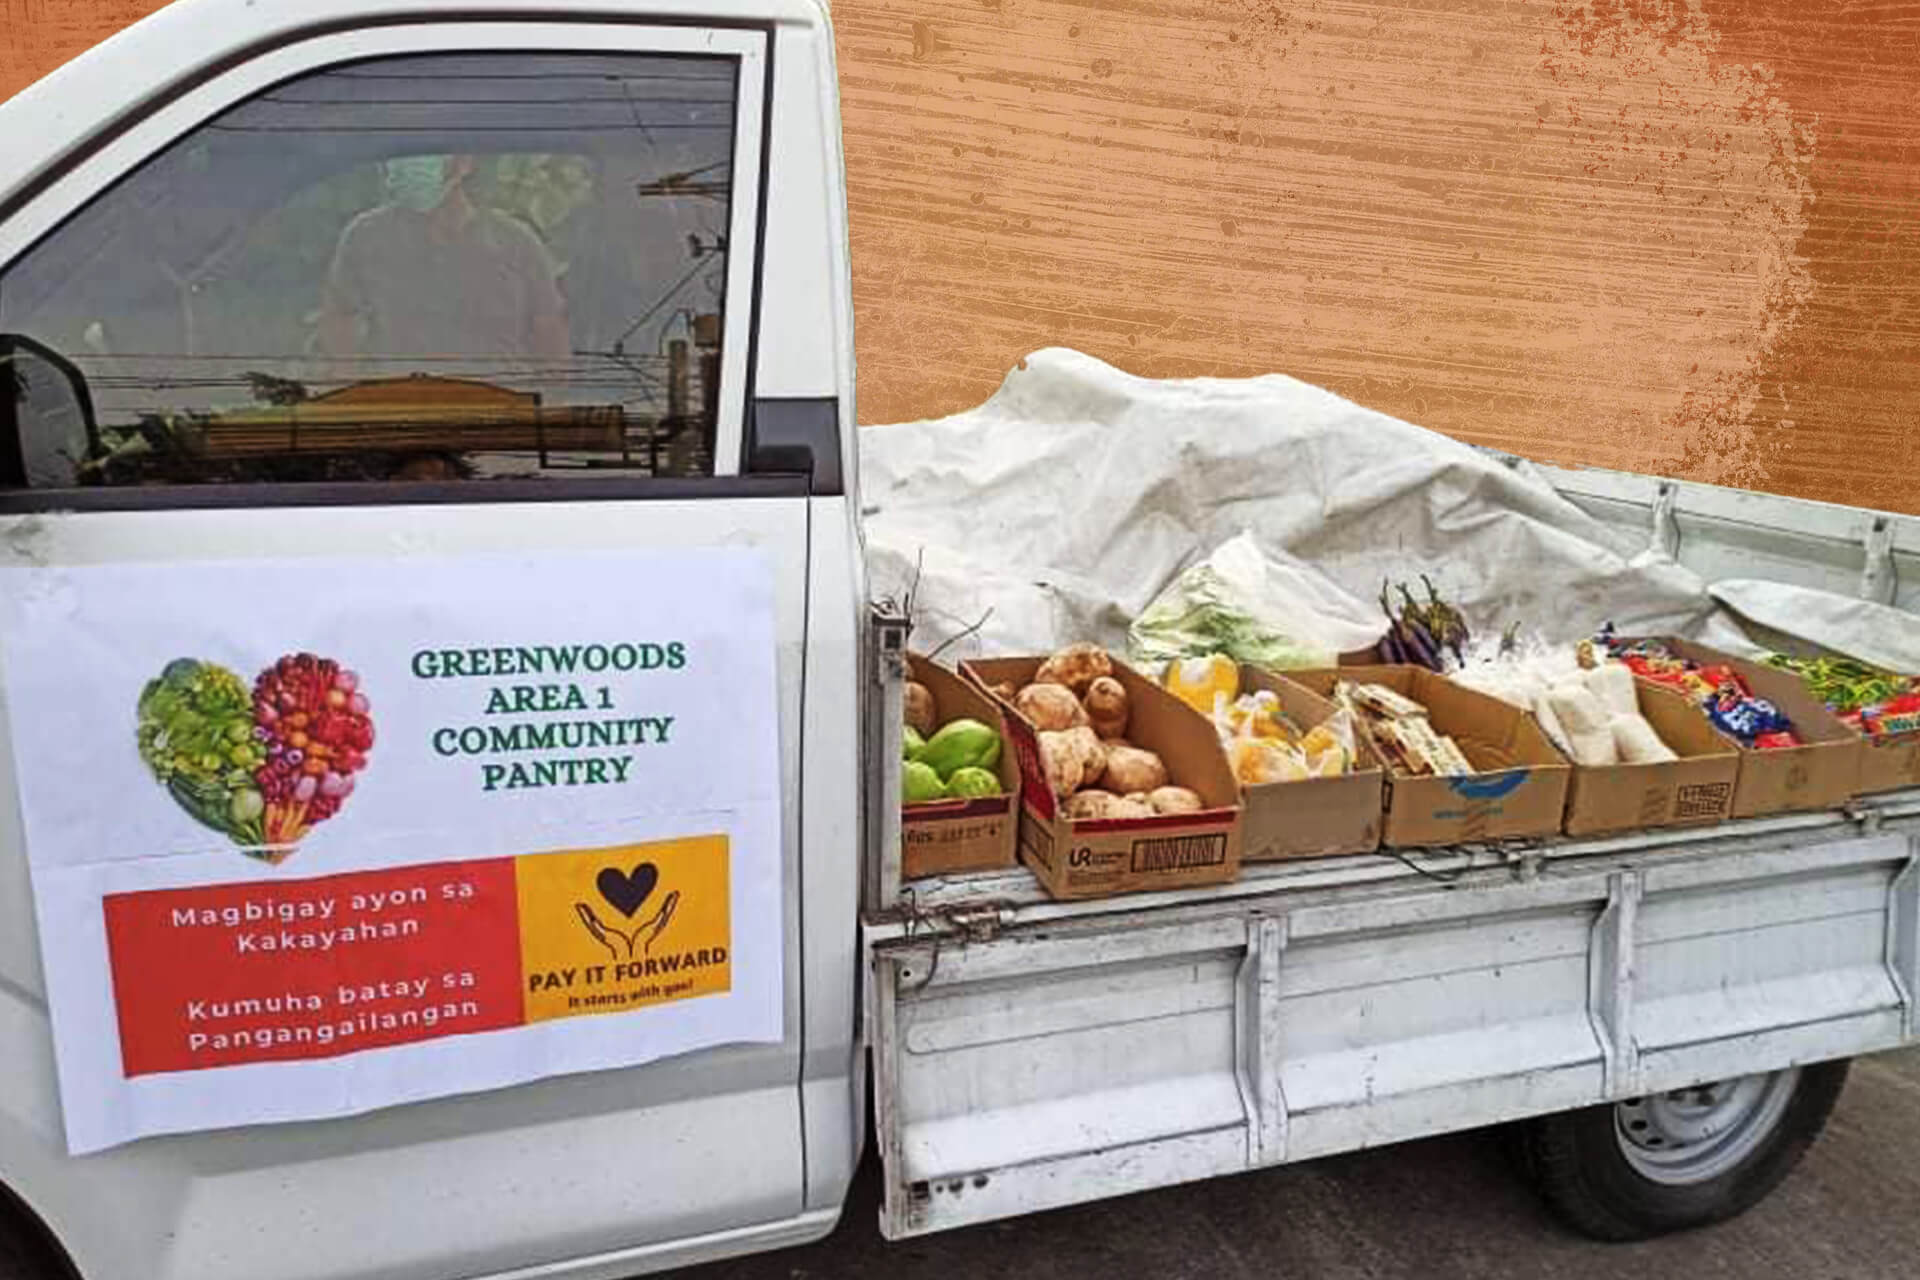 The Greenwoods Area 1 Community Pantry operates from a small truck for easier mobility.